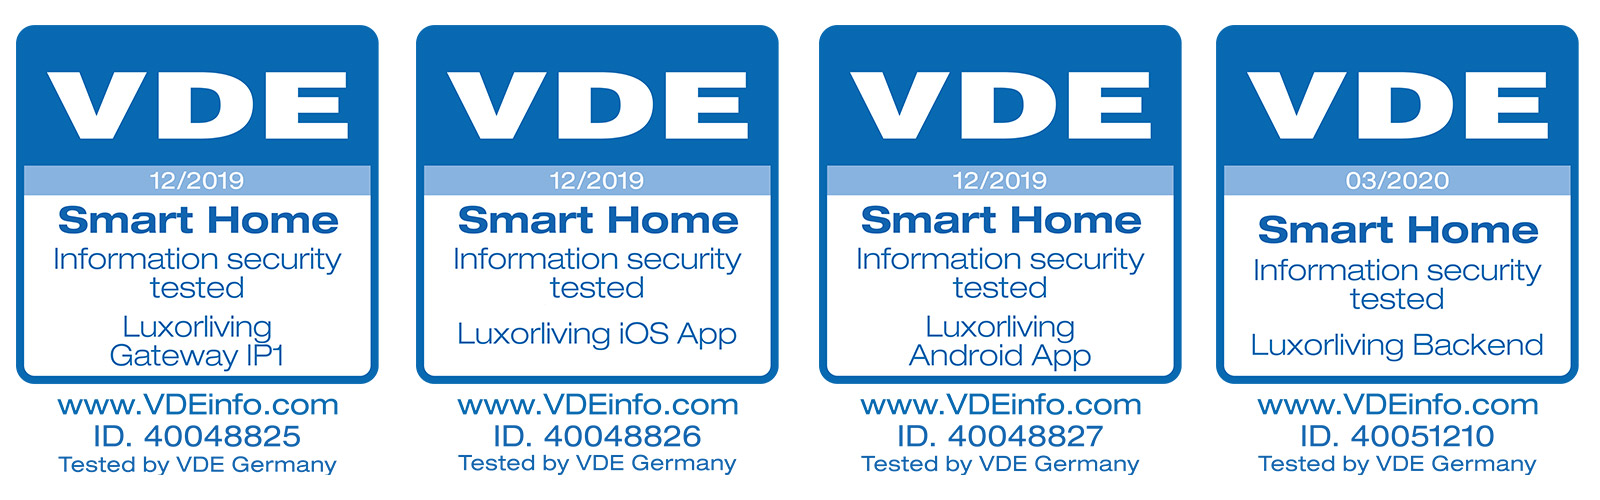 LUXORliving VDE Certification 2019